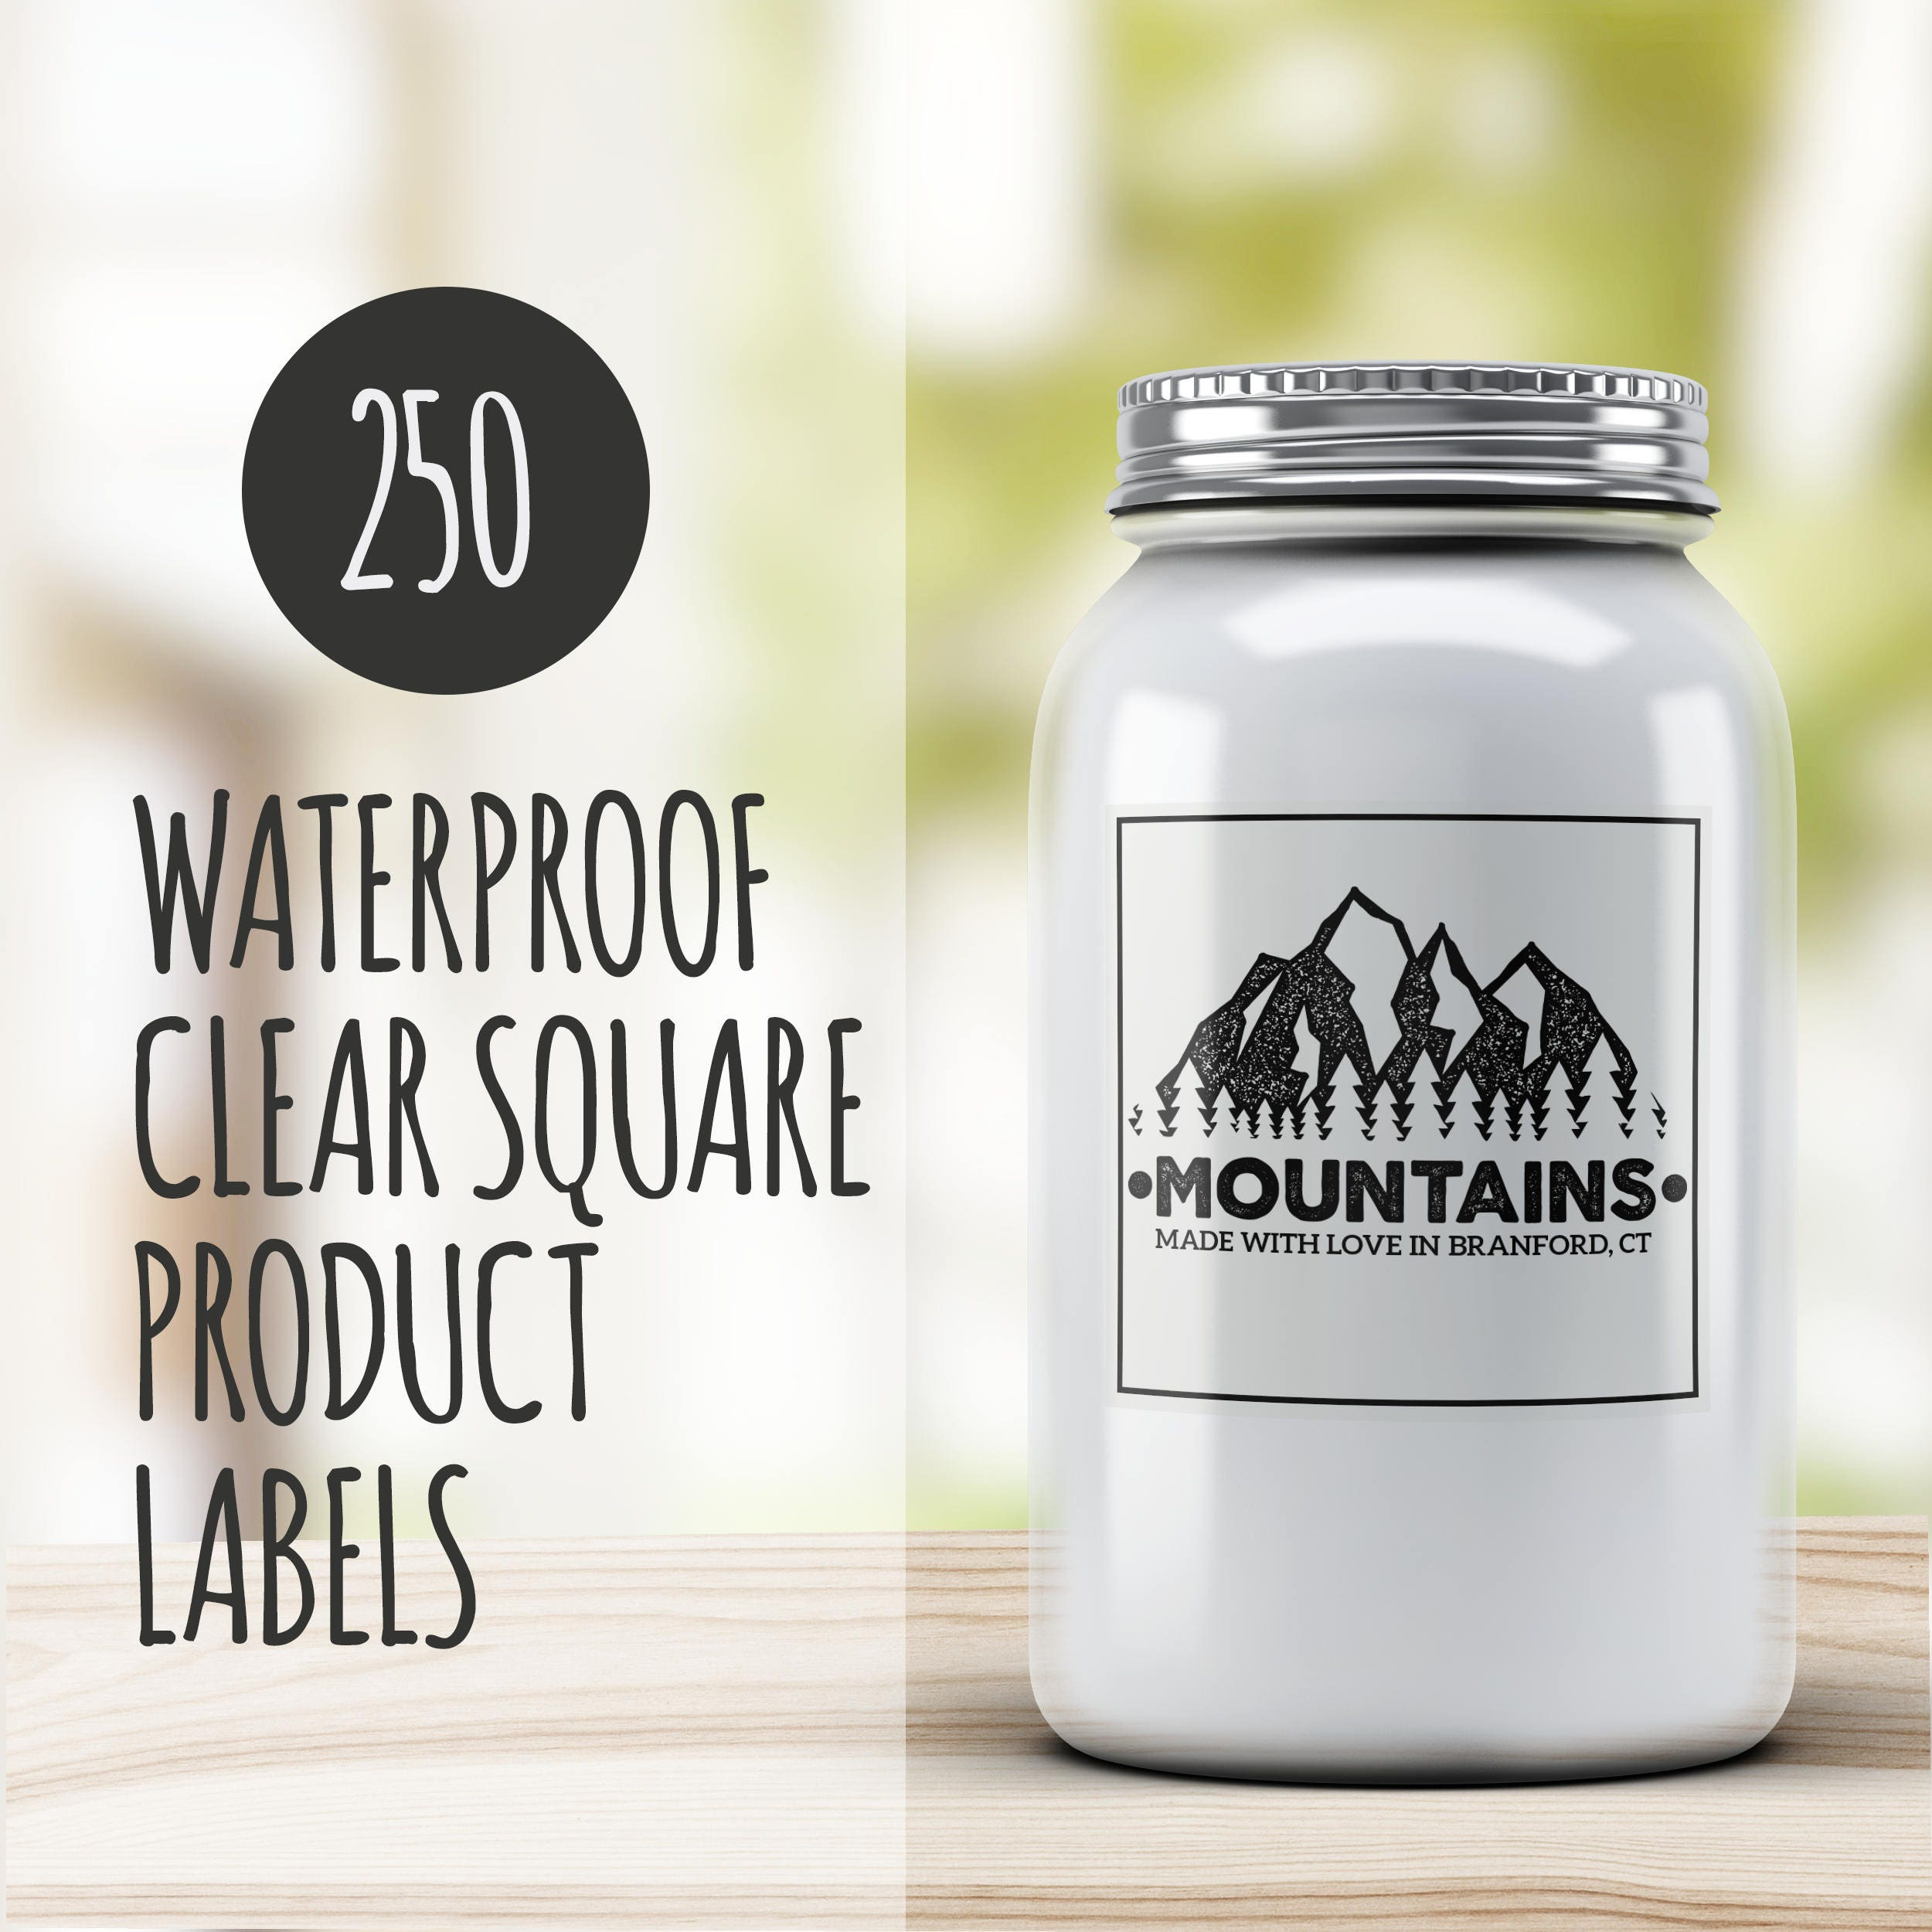 Custom product labels clear 250 custom stickers square vinyl stickers waterproof from juststickerbuttons on etsy studio